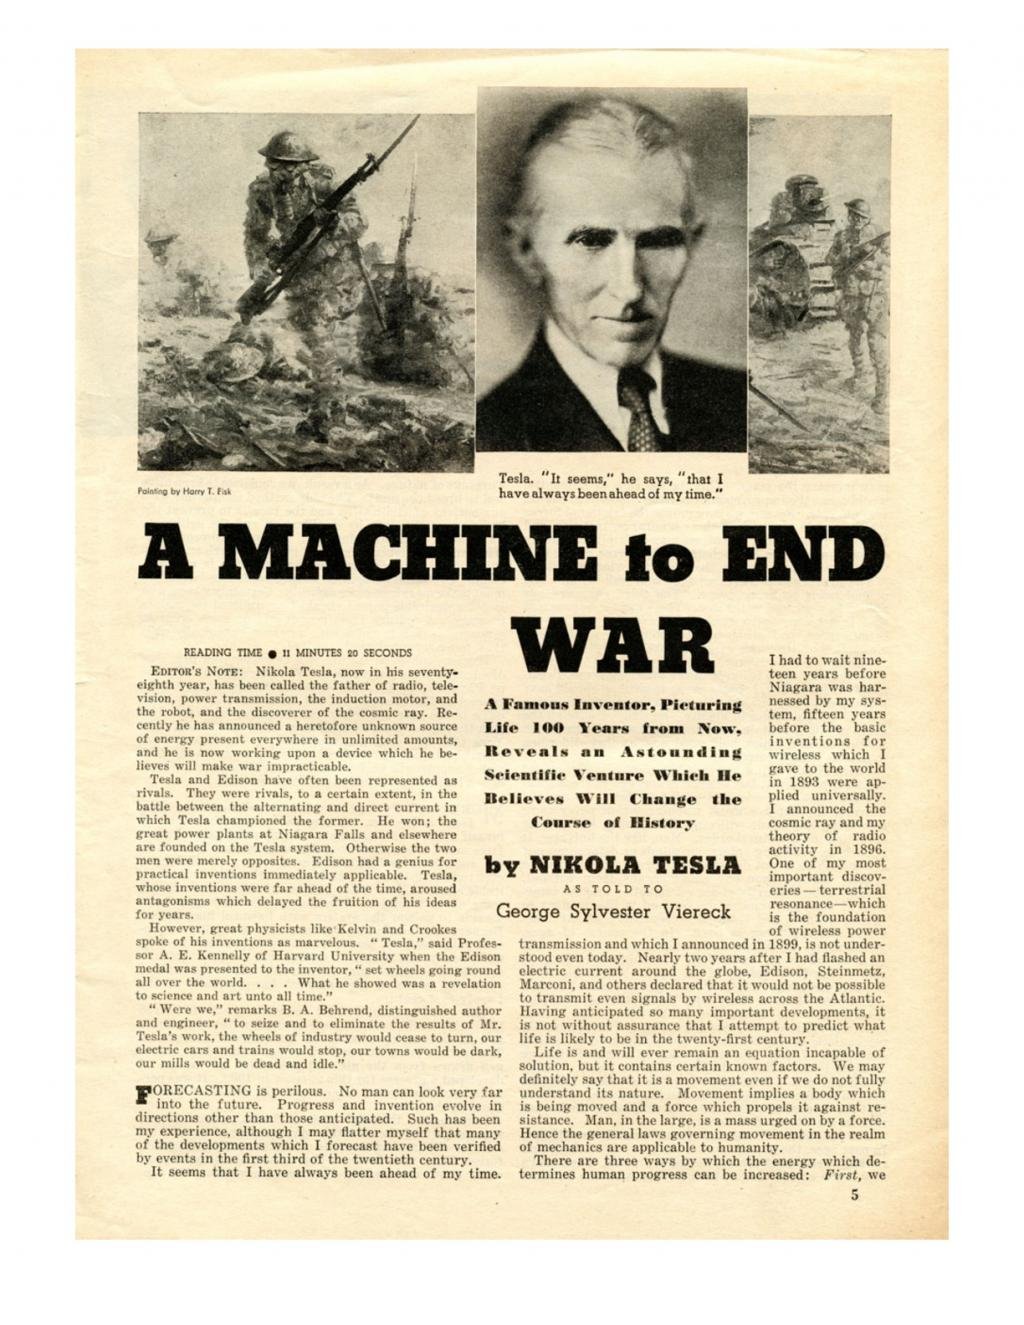 Preview of A Machine to End War * article